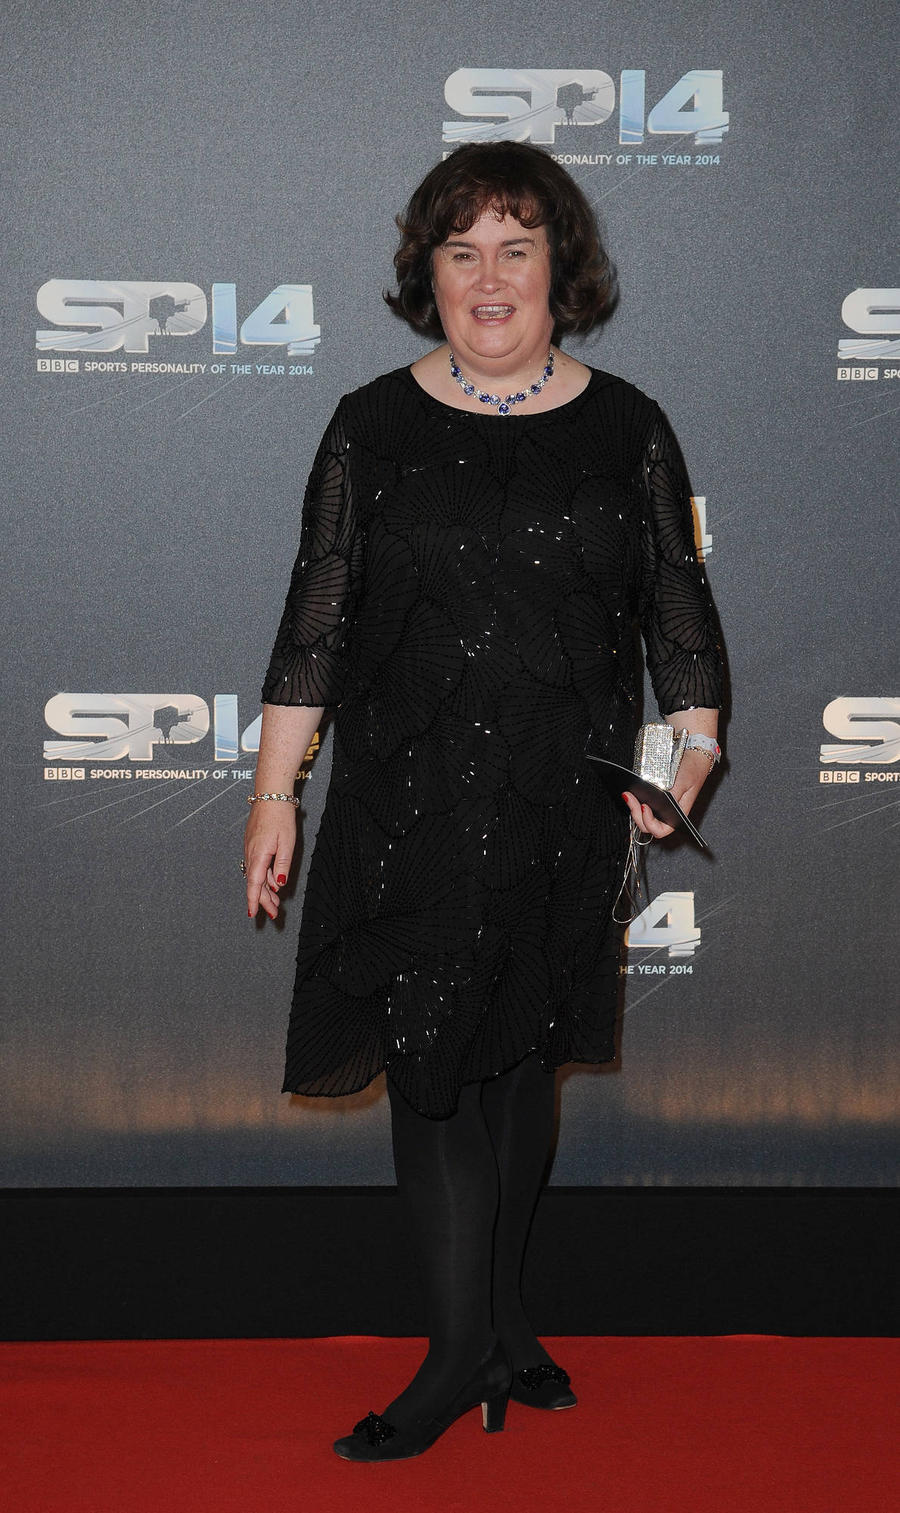 Susan Boyle 'Recovering' After Airport Drama